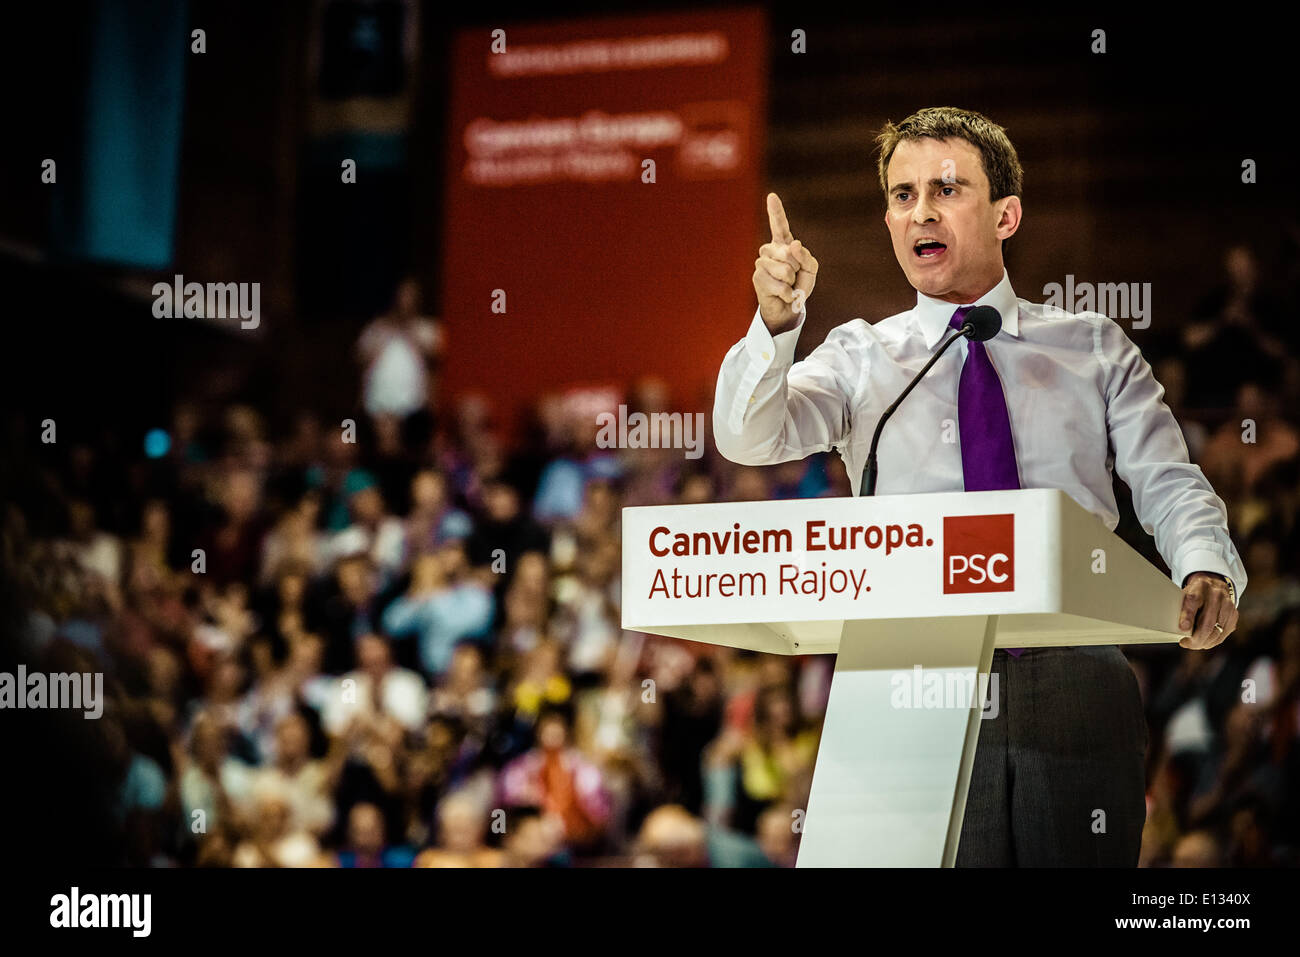 Barcelona, Spain. May 21st, 2014: Manuel Valls, Prime Minister of France, speaks at the central election meeting of the Catalan socialists in Barcelona Credit:  matthi/Alamy Live News - Stock Image